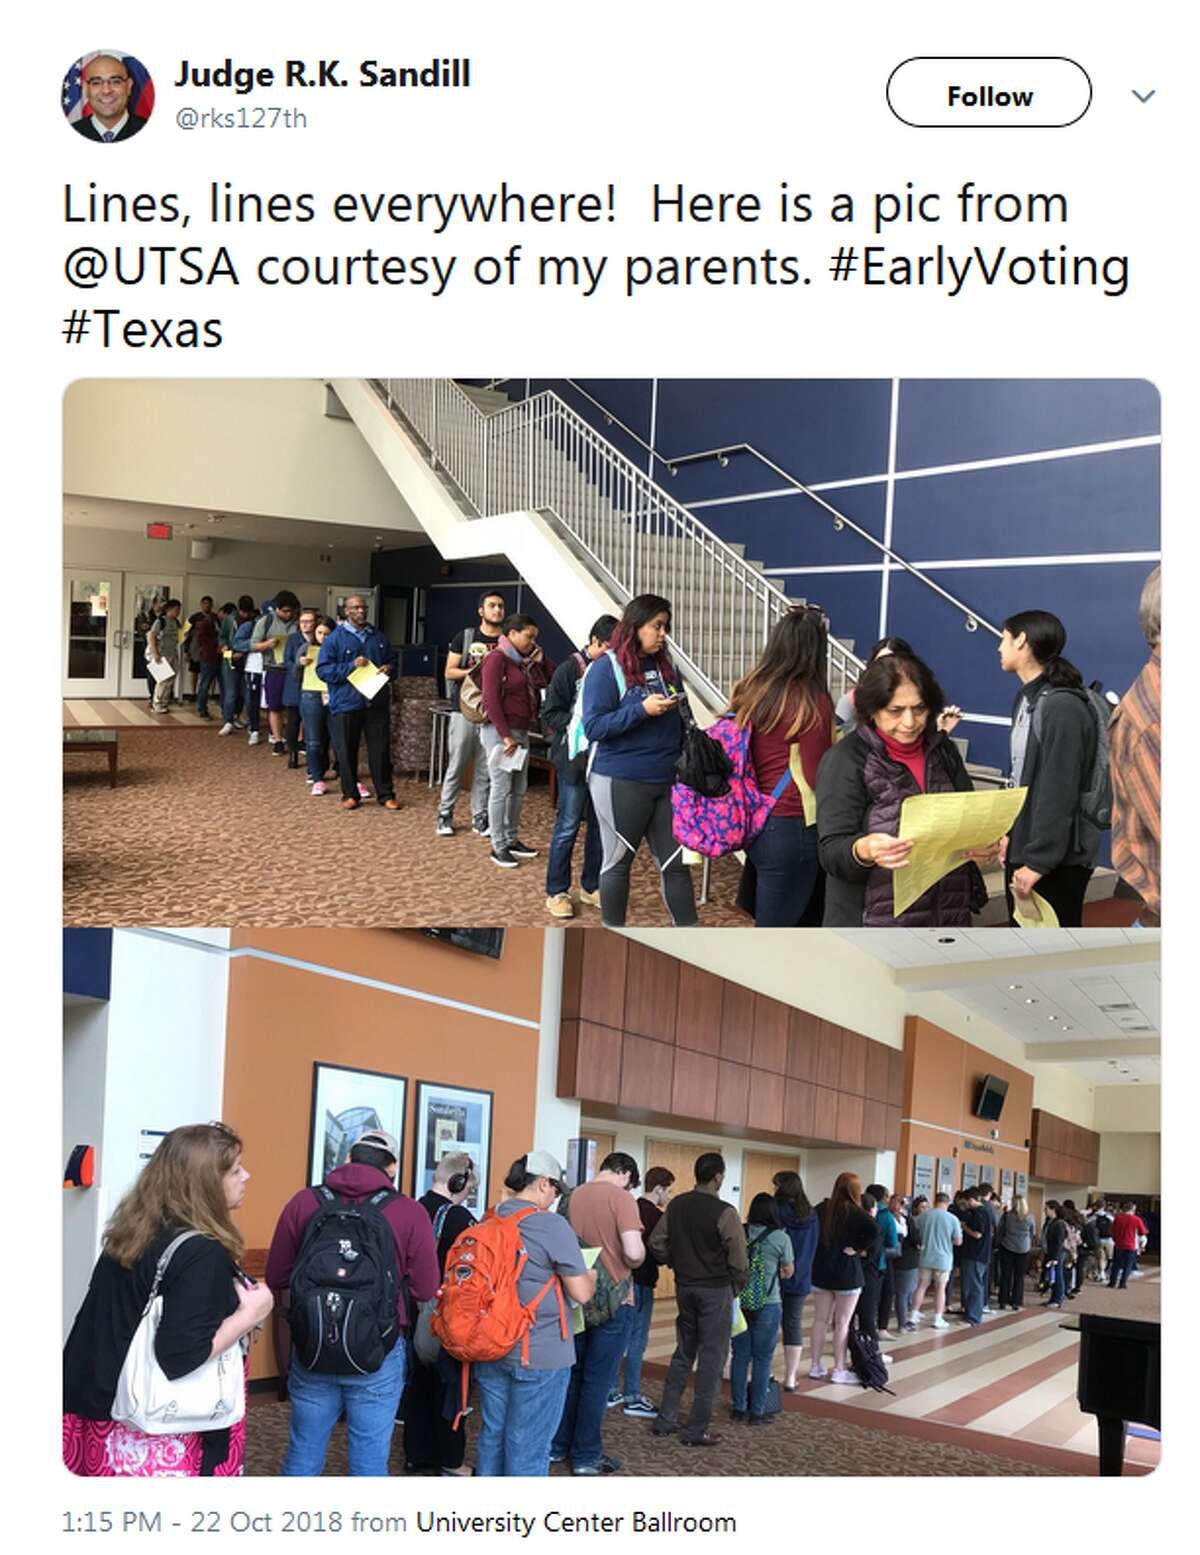 @rks127th: Lines, lines everywhere! Here is a pic from @UTSA courtesy of my parents. #EarlyVoting #Texas